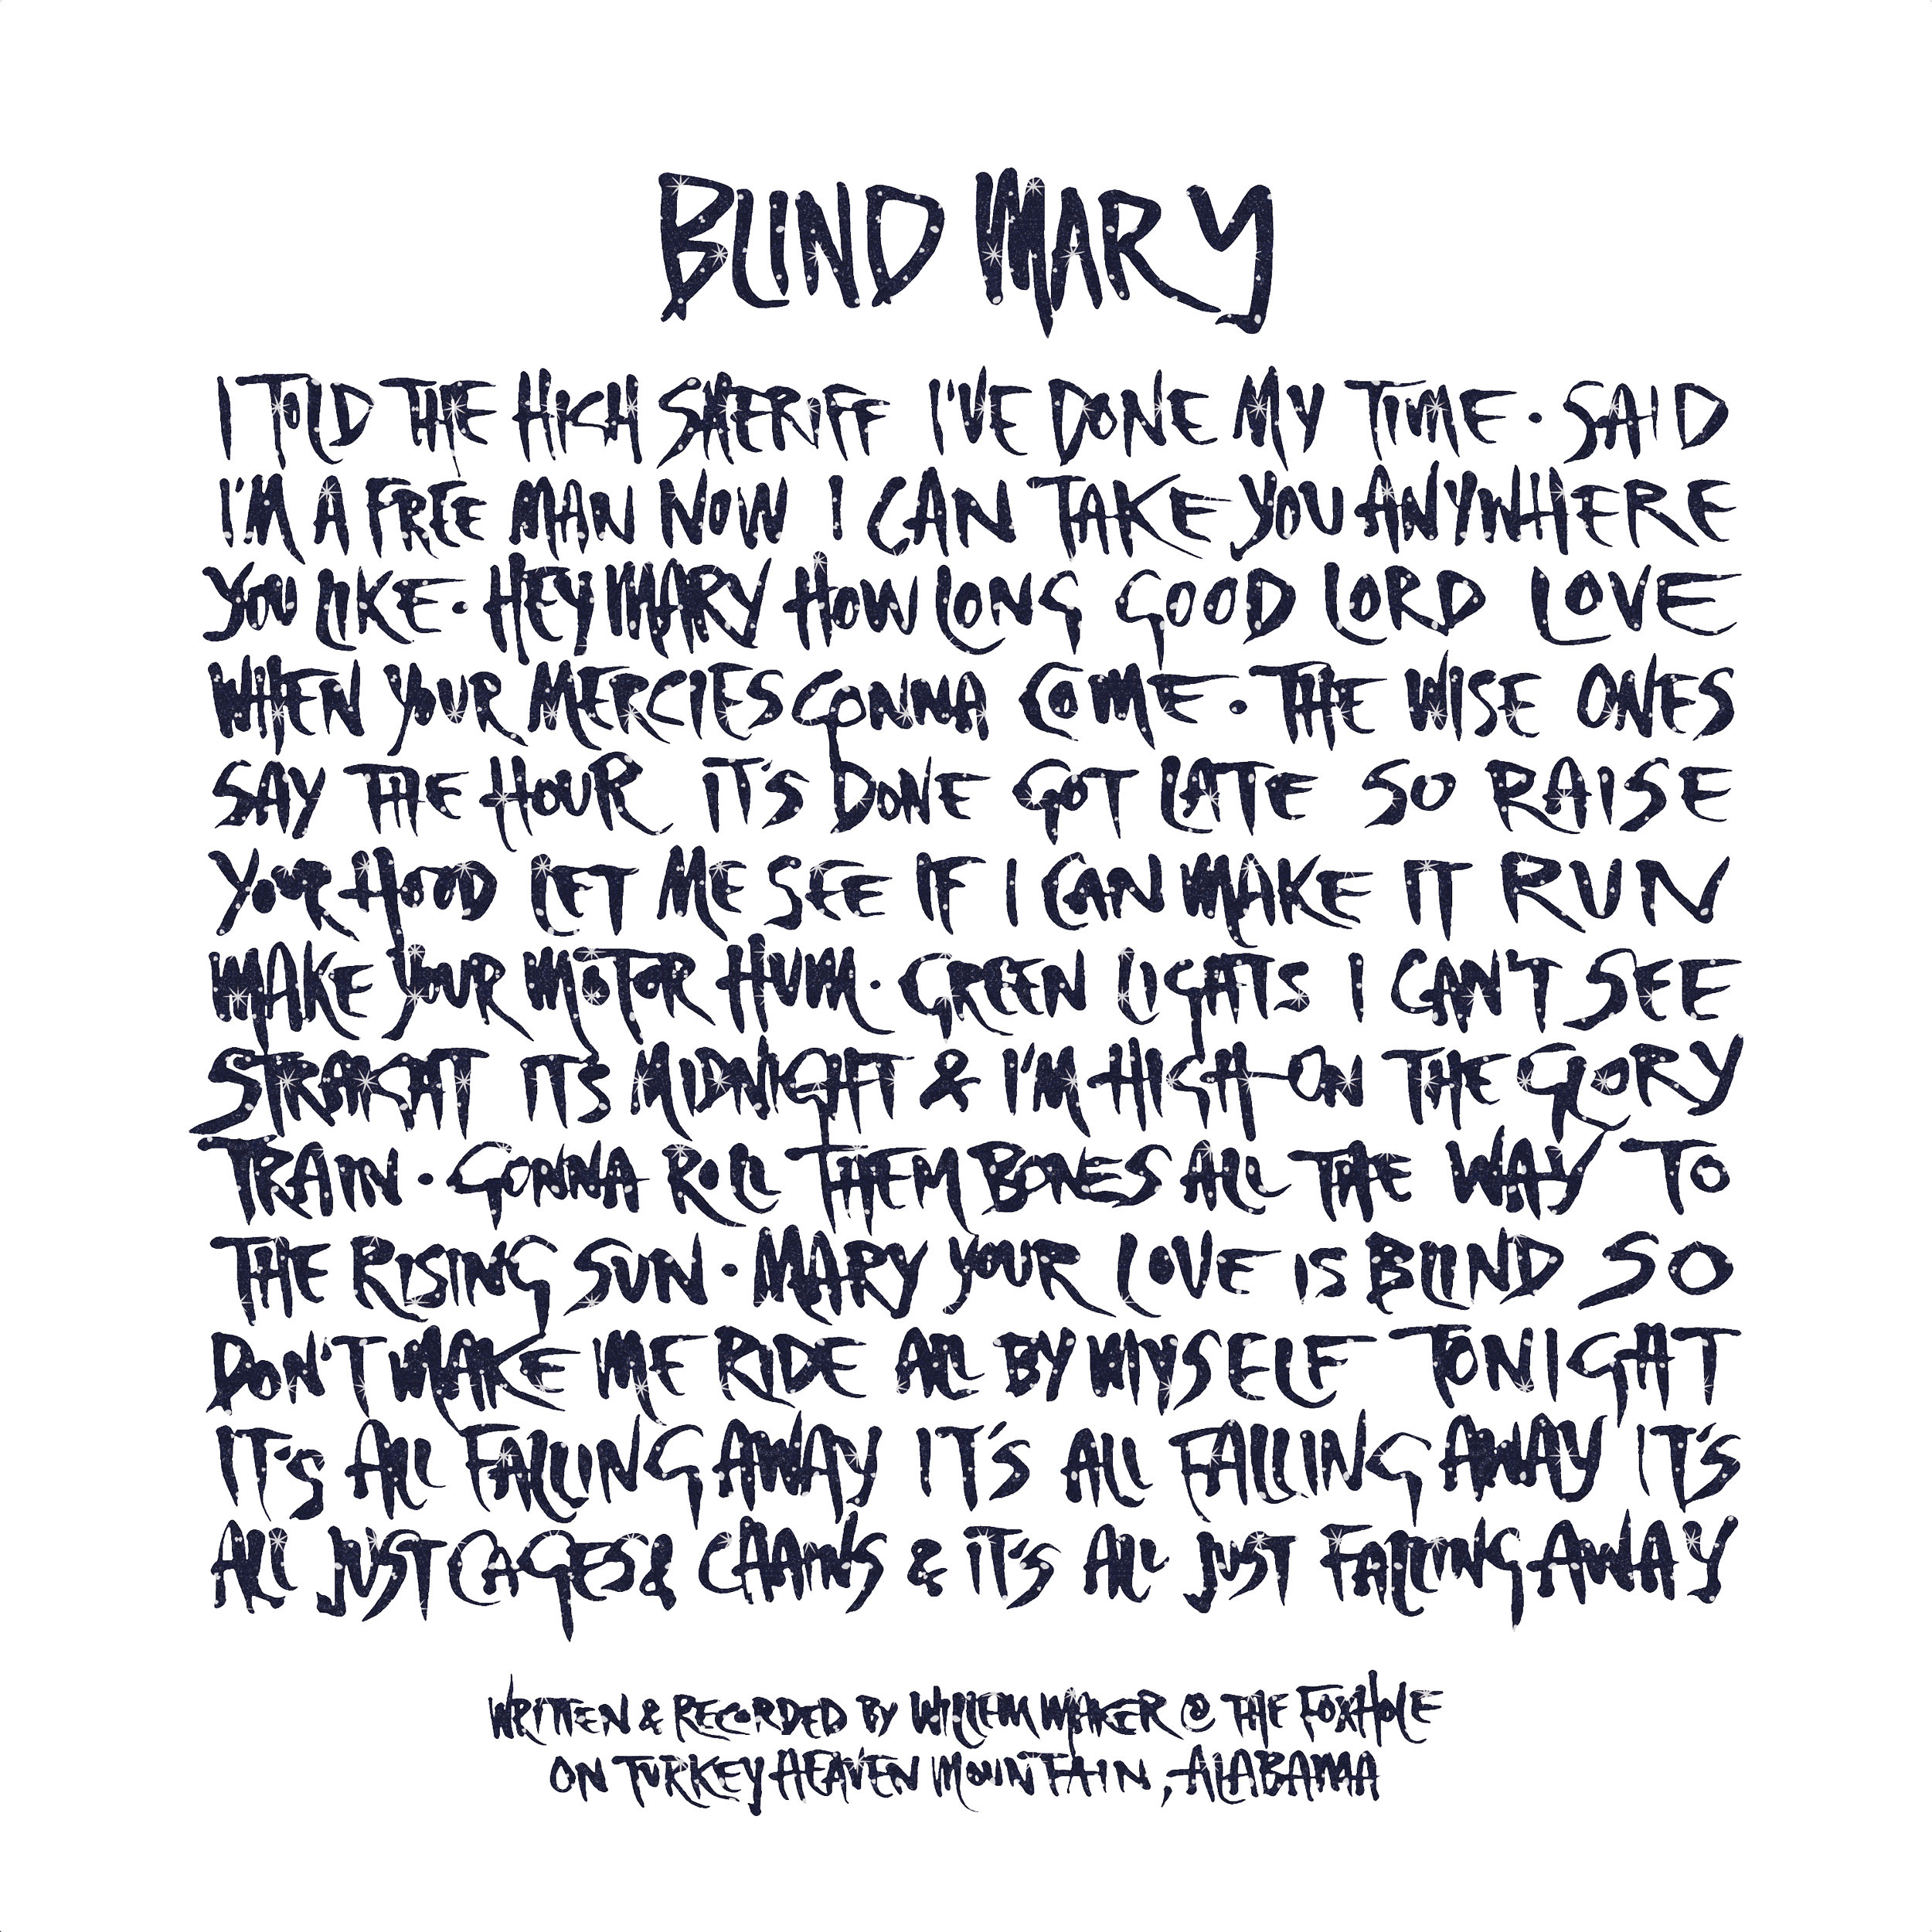 blind mary-lyrics-ss.jpg